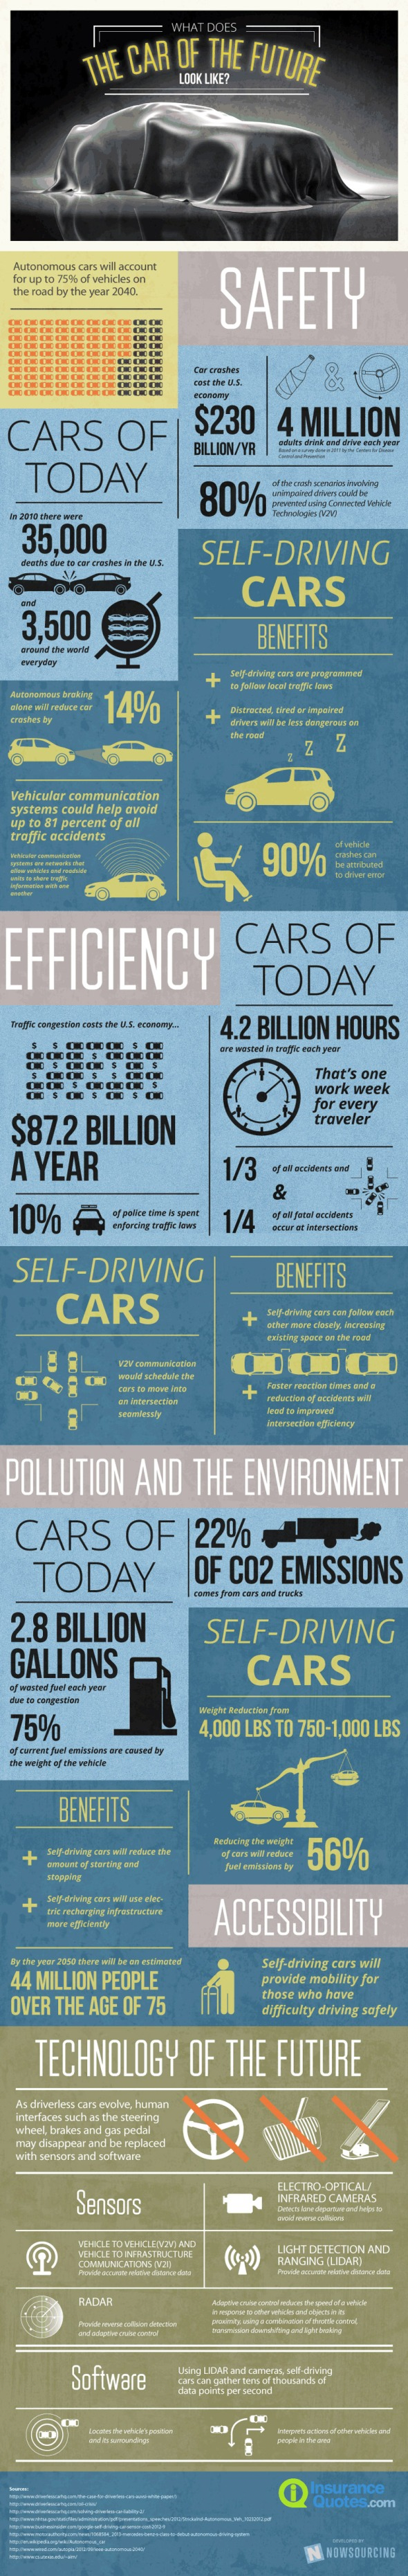 FUTURE CAR INFOGRAPHIC